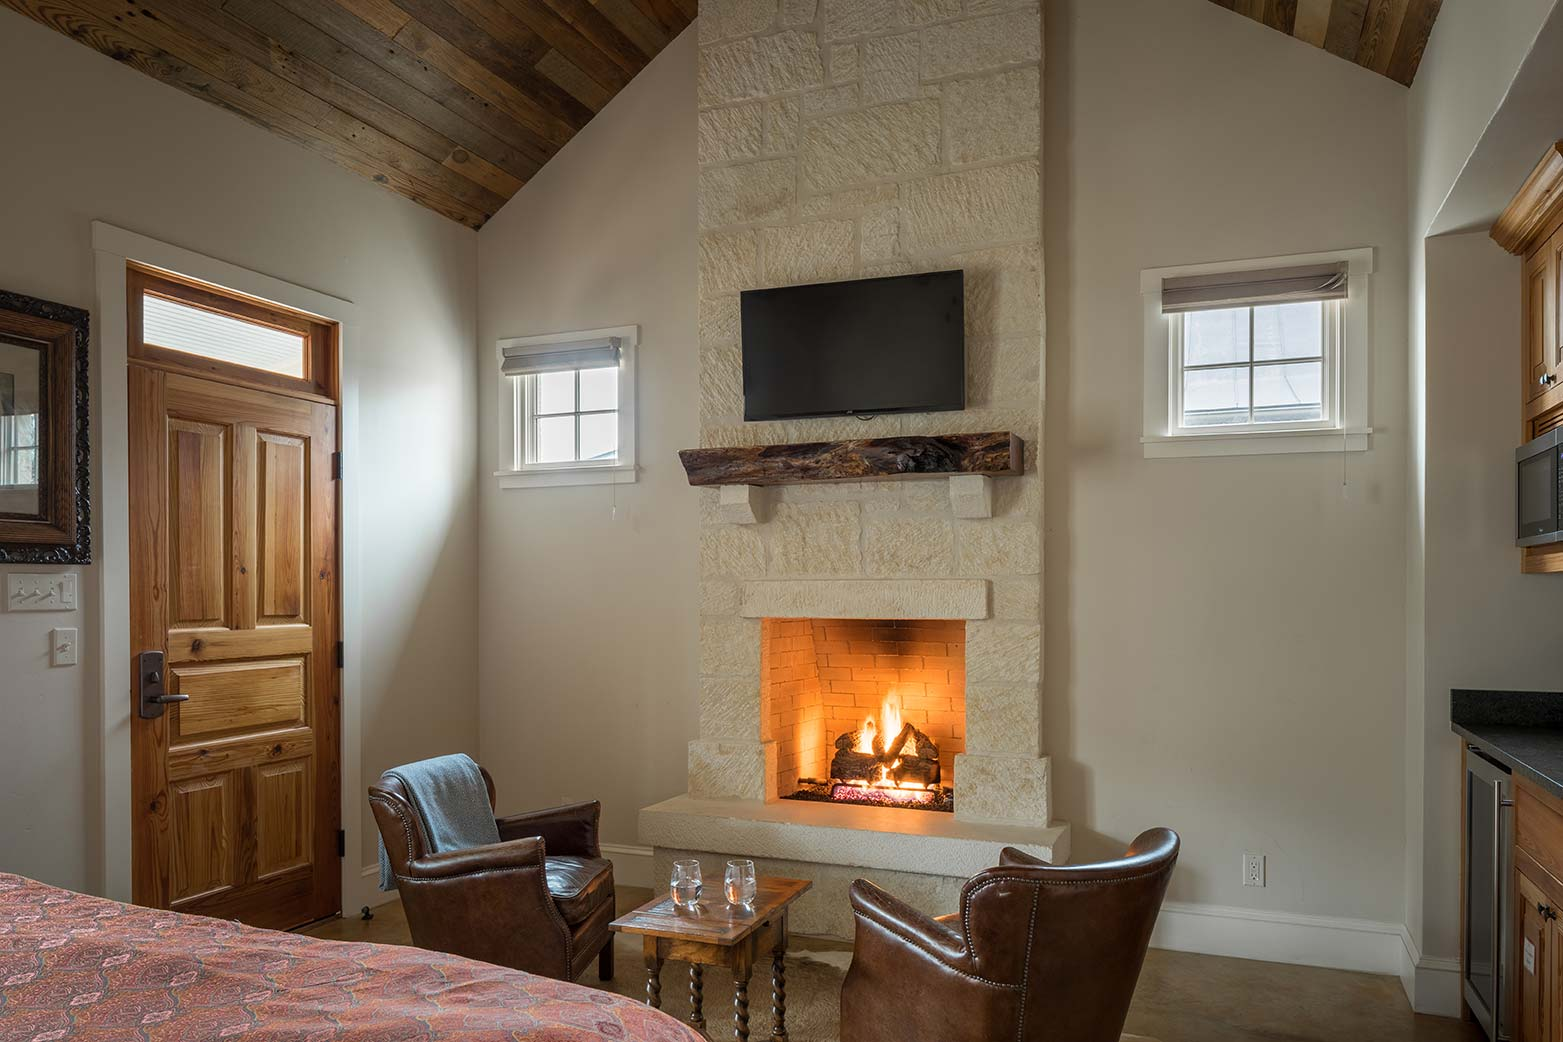 blacksmith-quarters-fredericksburg-realty-texas-commercial-real-estate-for-sale-fireplace-cozy-investment.jpg